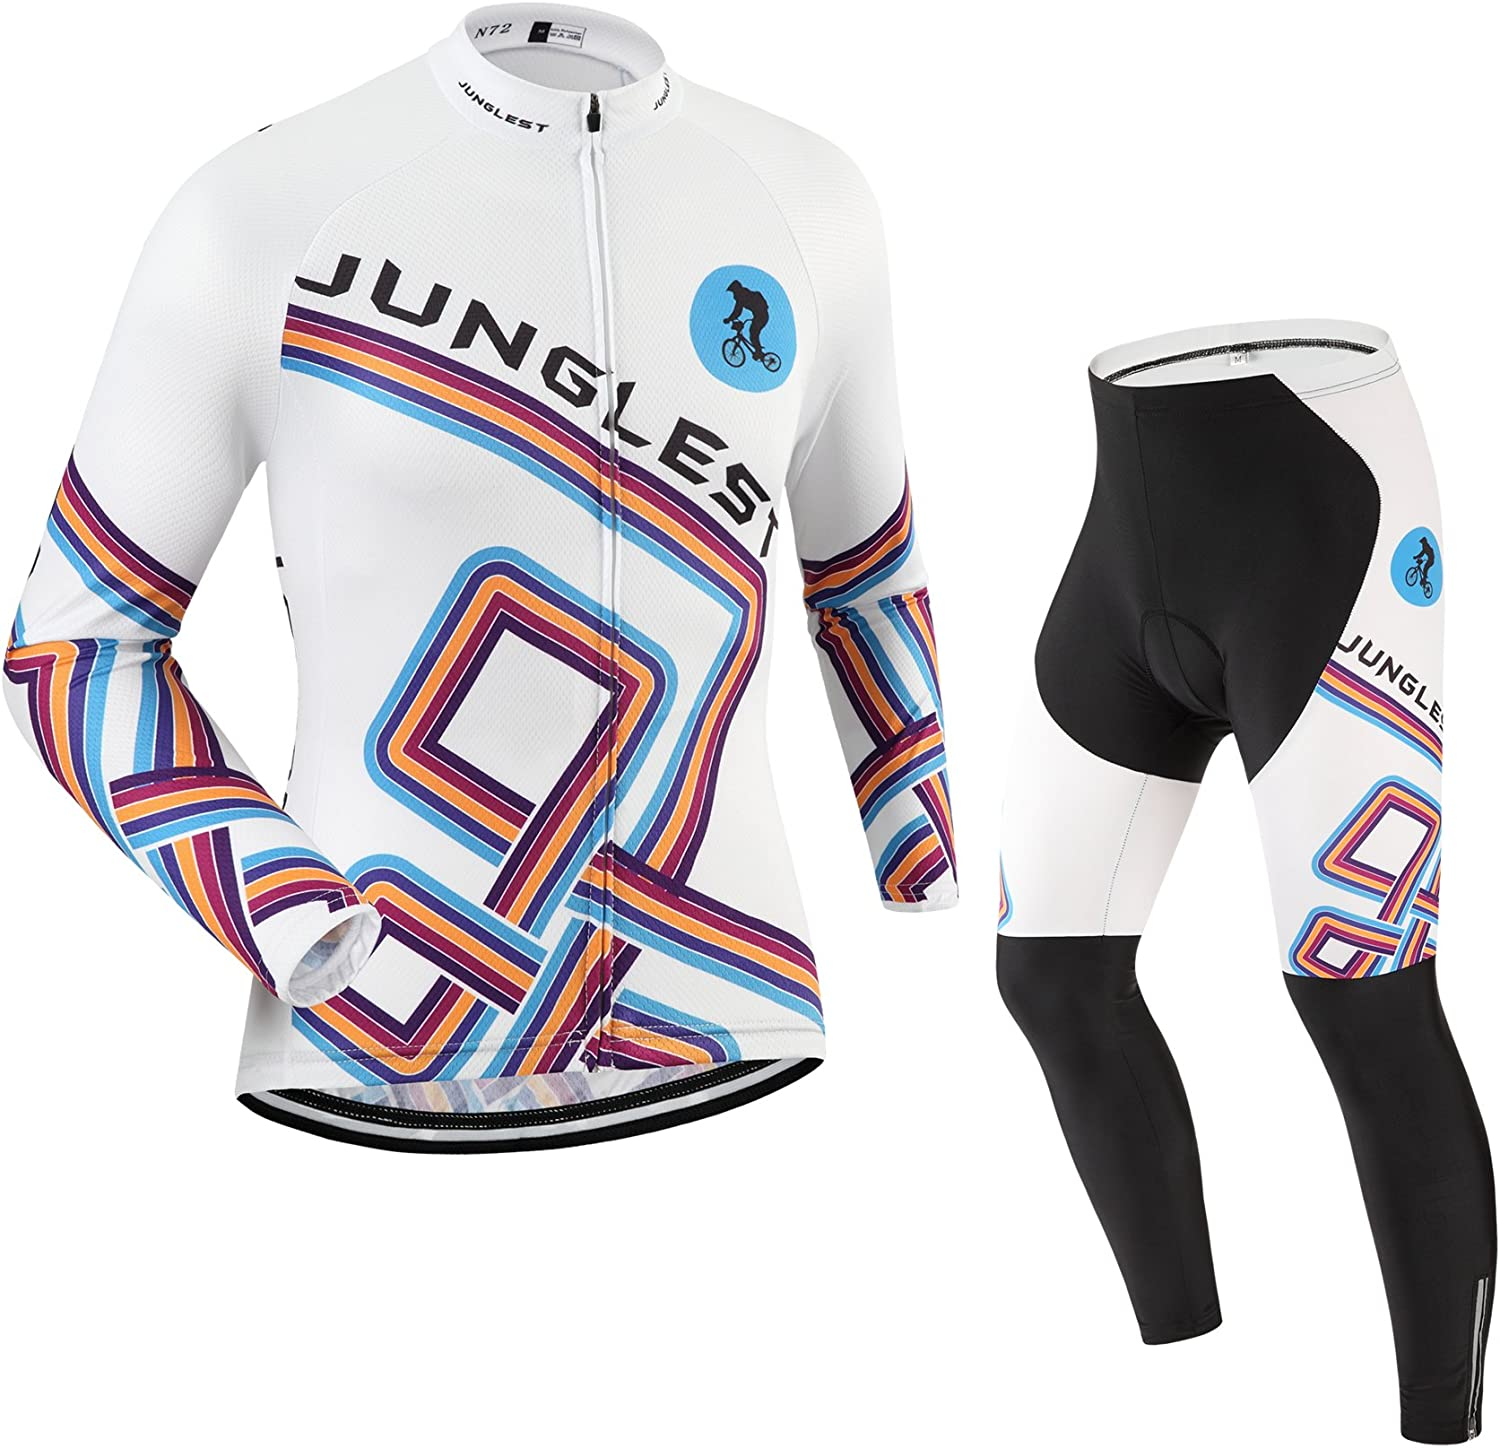 Cycling jersey Set, Maillot de Cyclisme Wen Homme Long sleeve Manches Longues(S5XL,option bib Cuissard,3D pad Coussin) N72